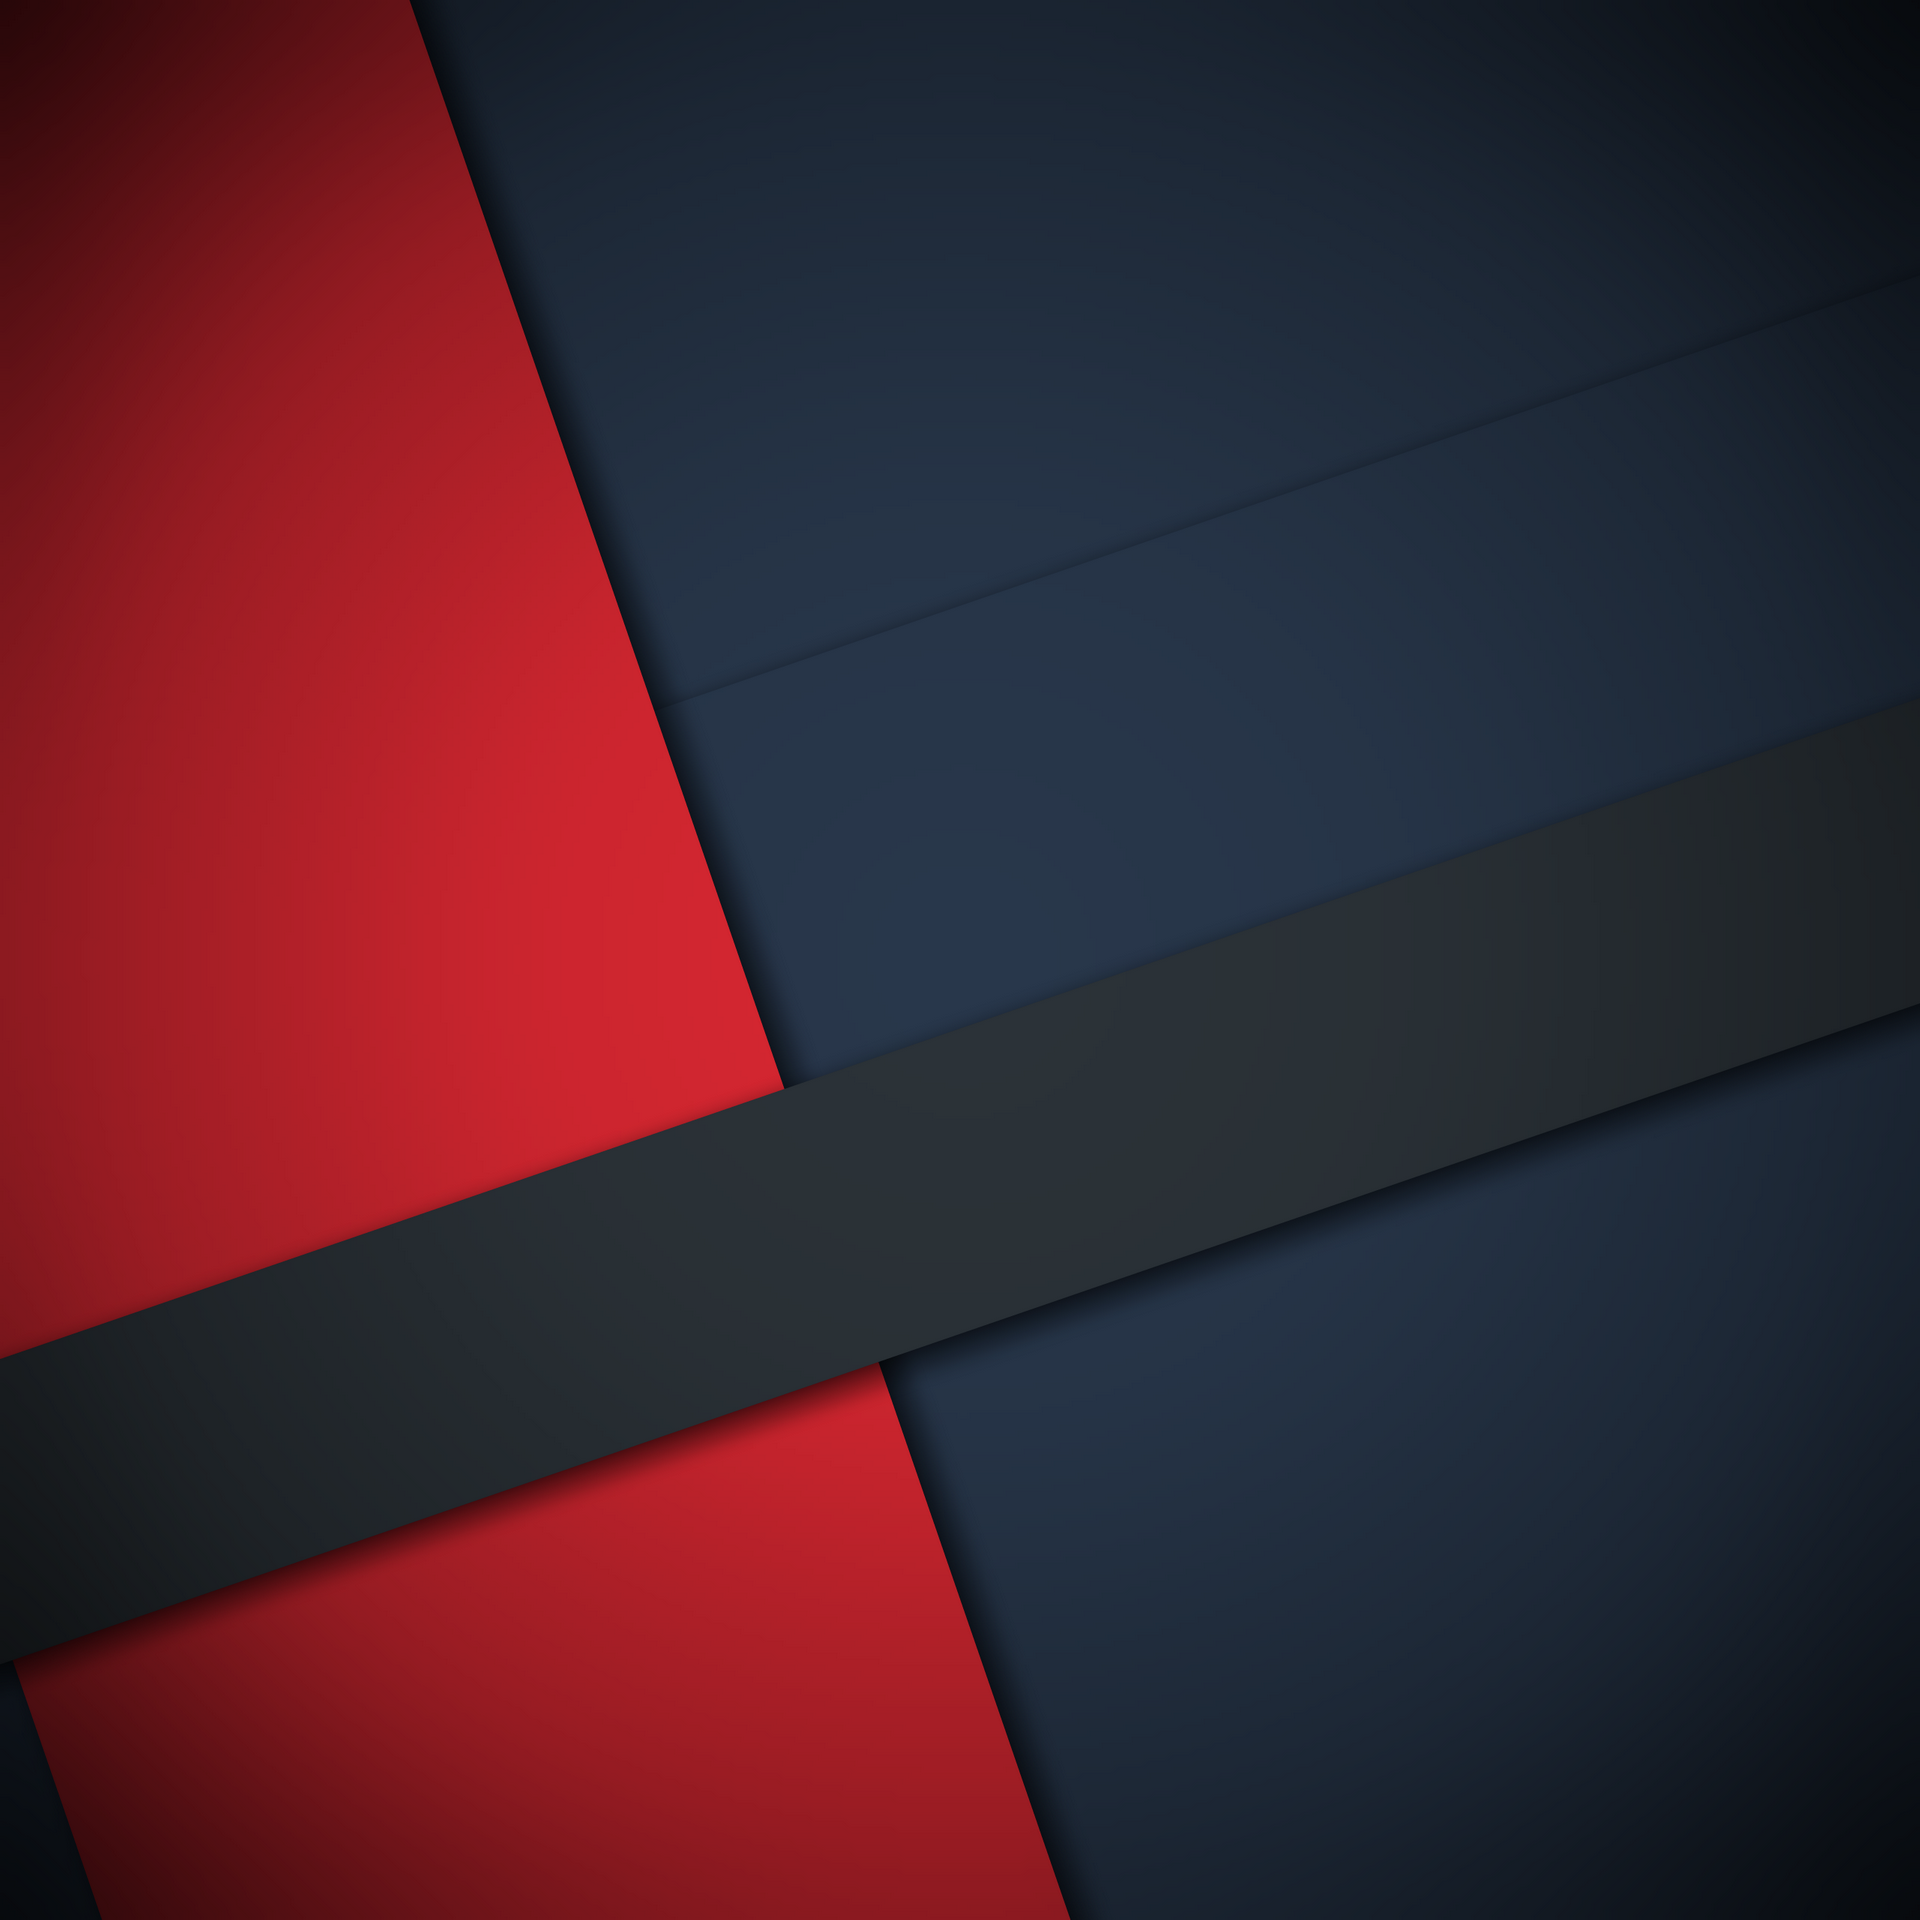 Right click on any design to download - Modern Material Design Full Hd Wallpaper No 196